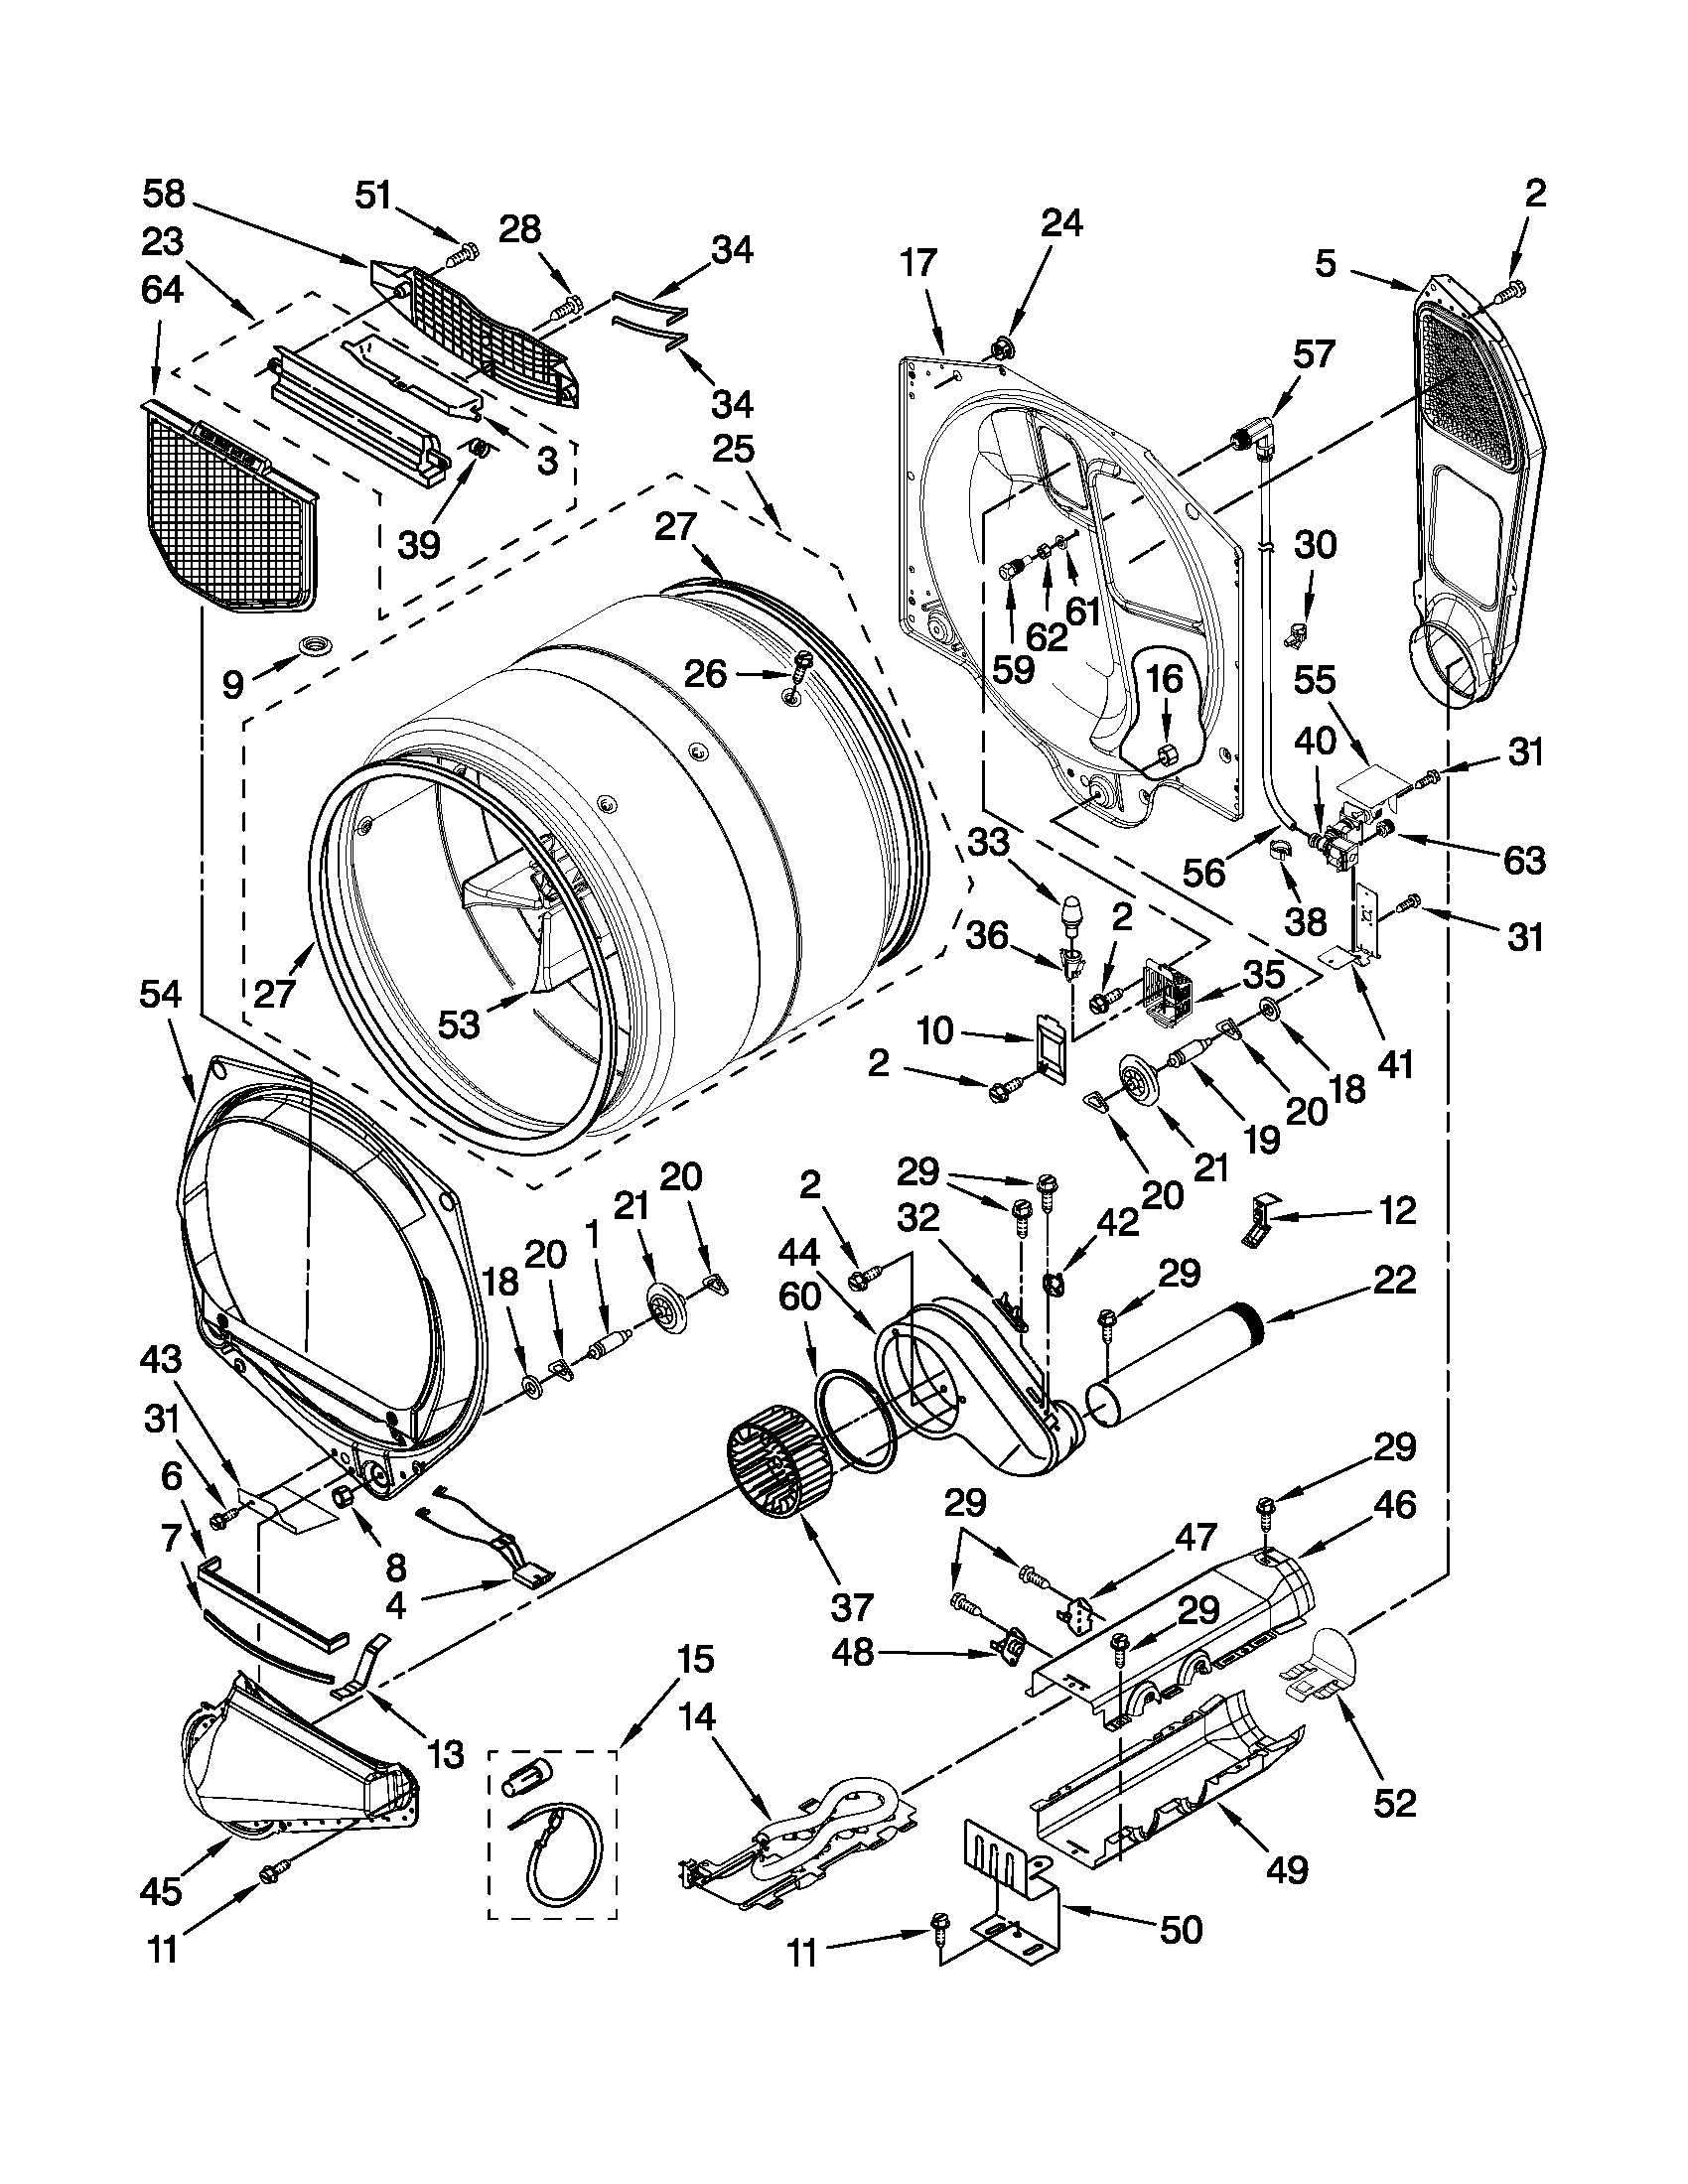 Whirlpool WED9610XW0 bulkhead parts diagram